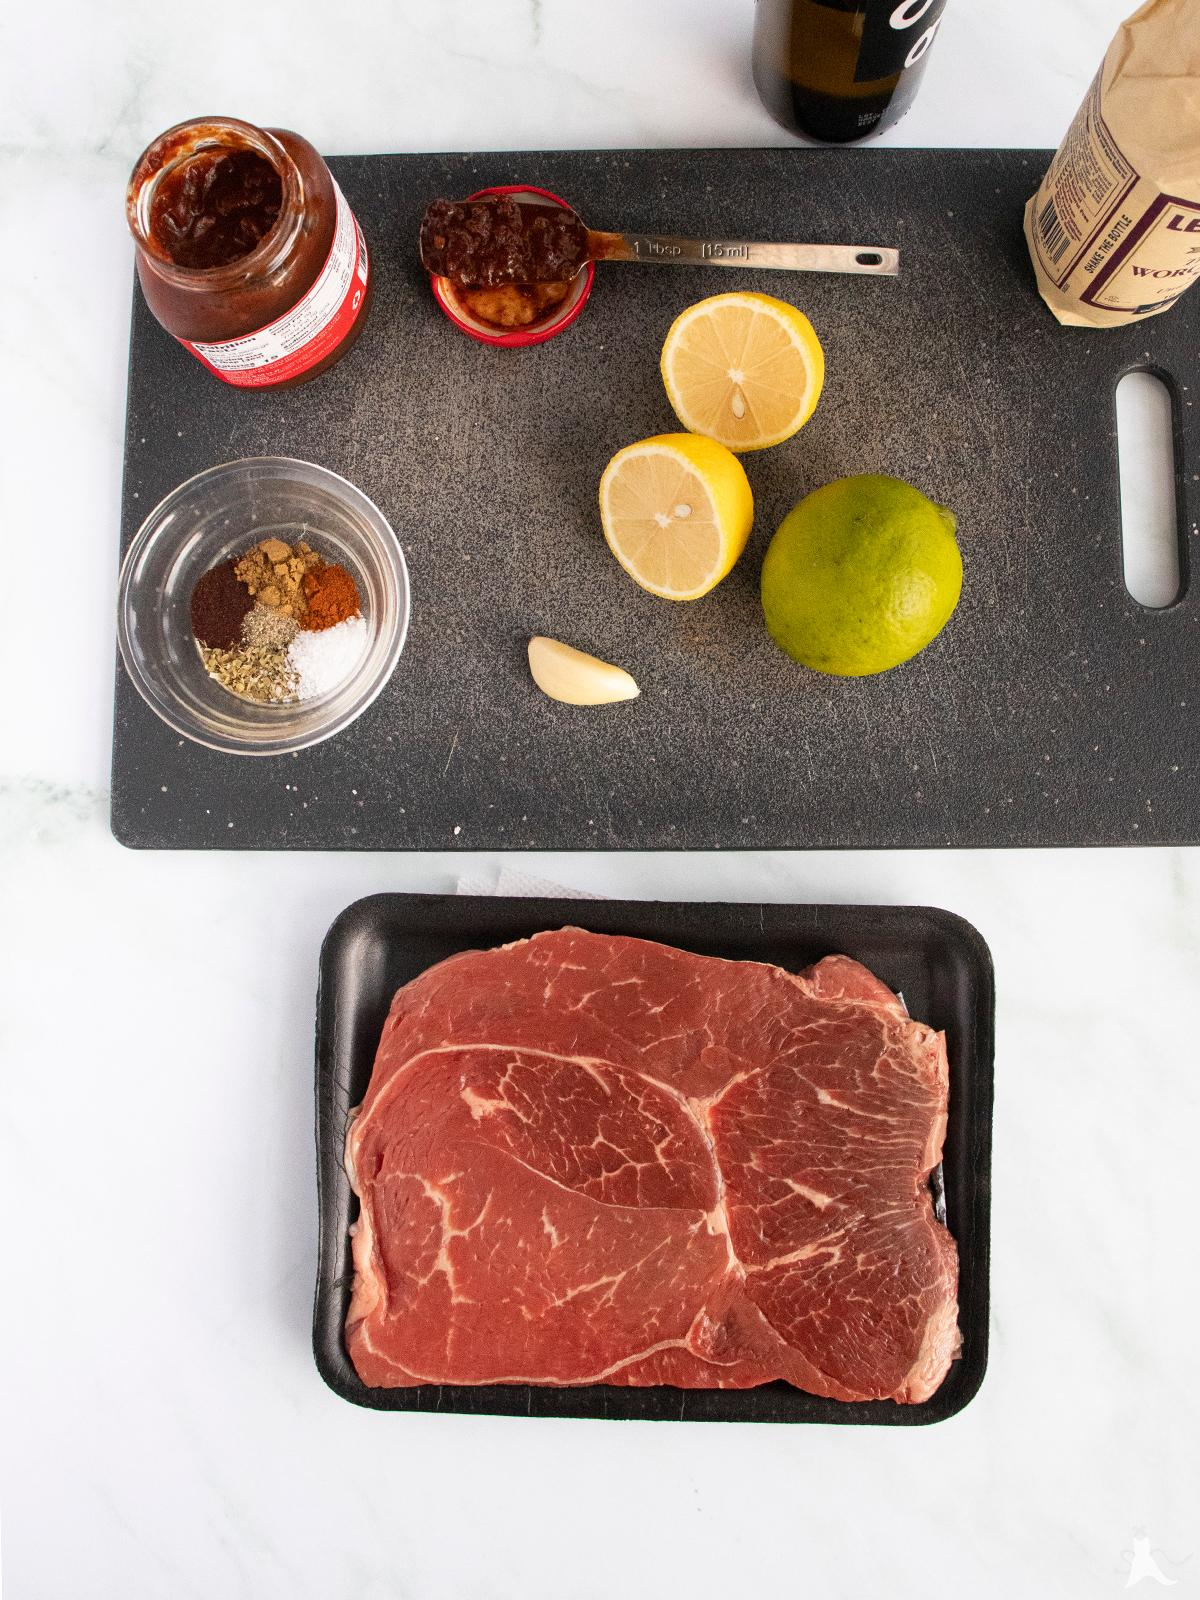 Raw Sirloin Tip Steak with ingredients for chipotle marinade